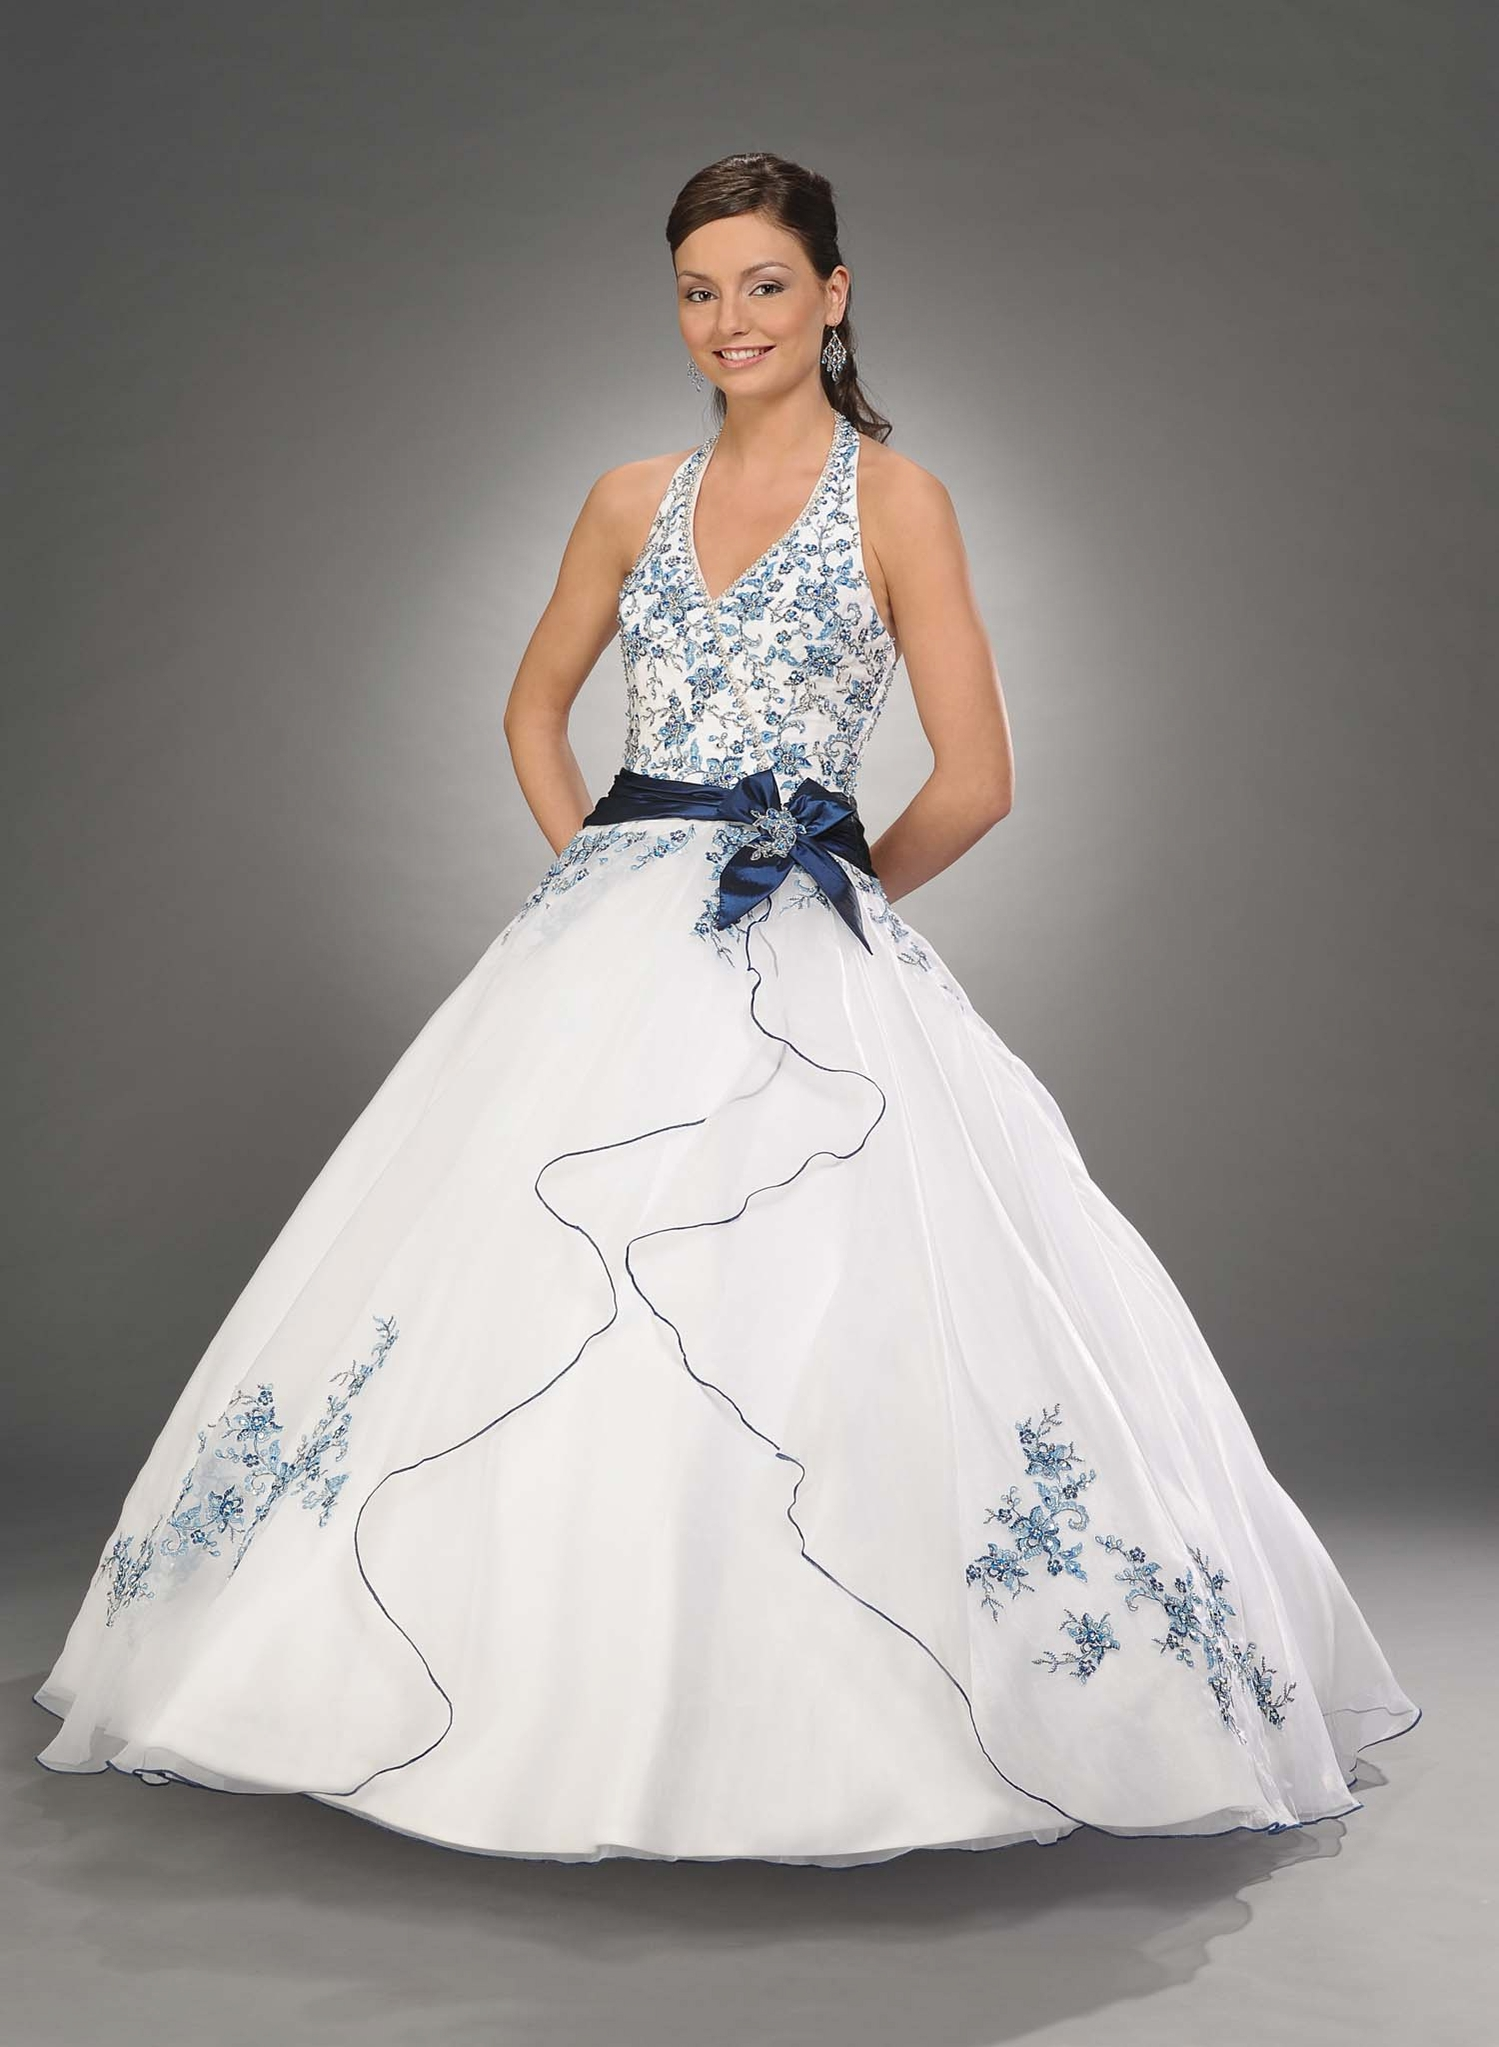 Ivory A Line Halter And V Neck Zipper Full Length Quinceanera Dresses With Navy Embroidery And Sash